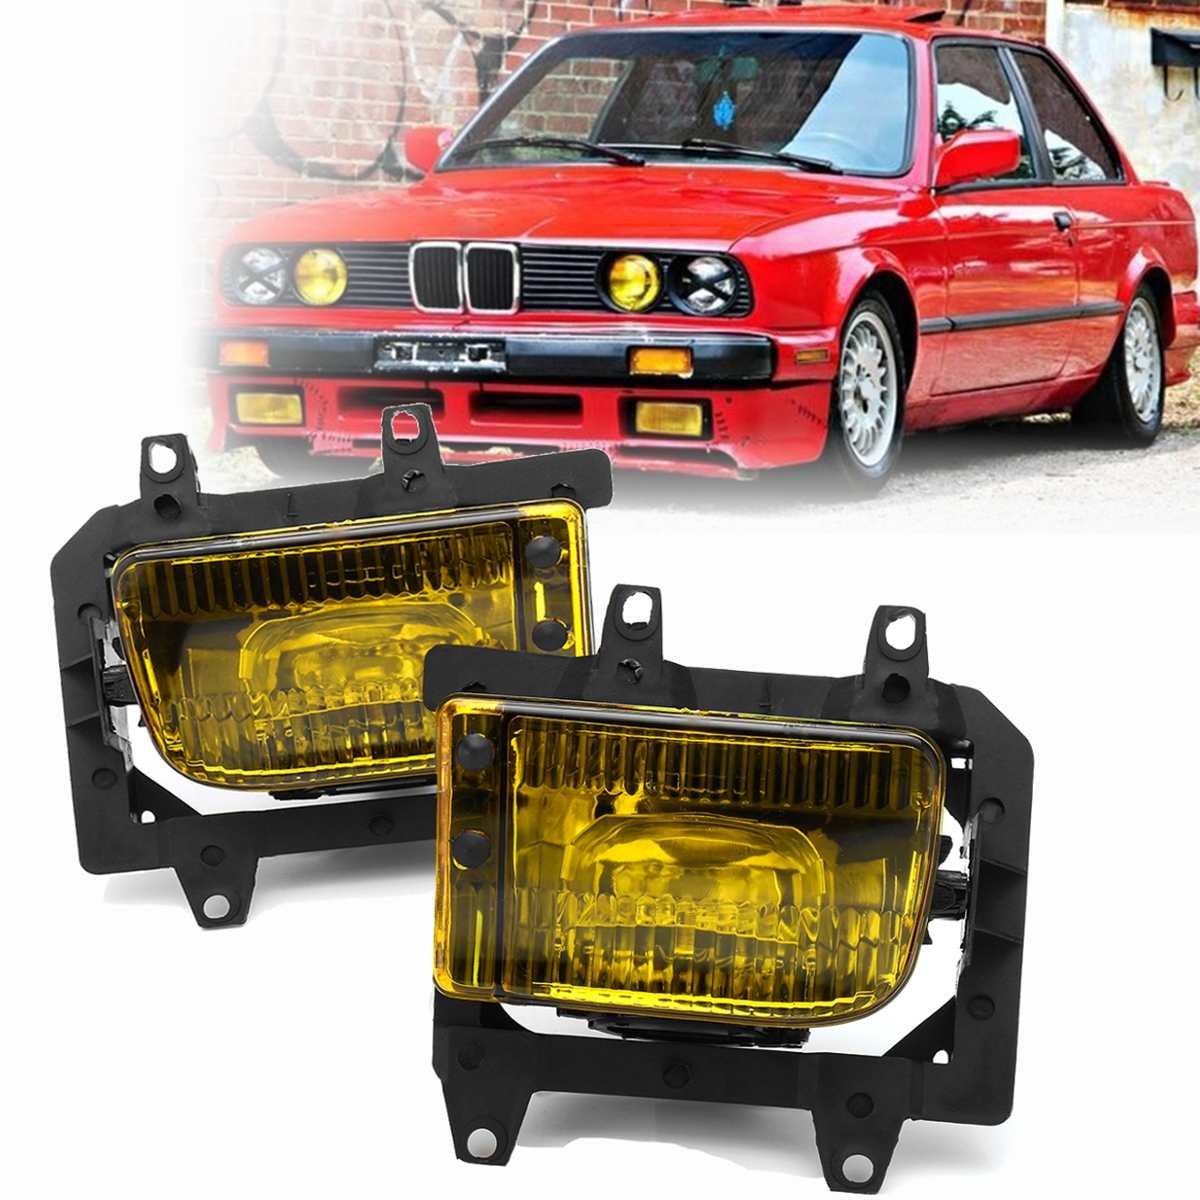 Fog Light Assembly Front Bumper Fog Light For BMW E30 318i 318is 325i 325is 325e 325es 325iX Fog Lamp House Crystal Len Cover